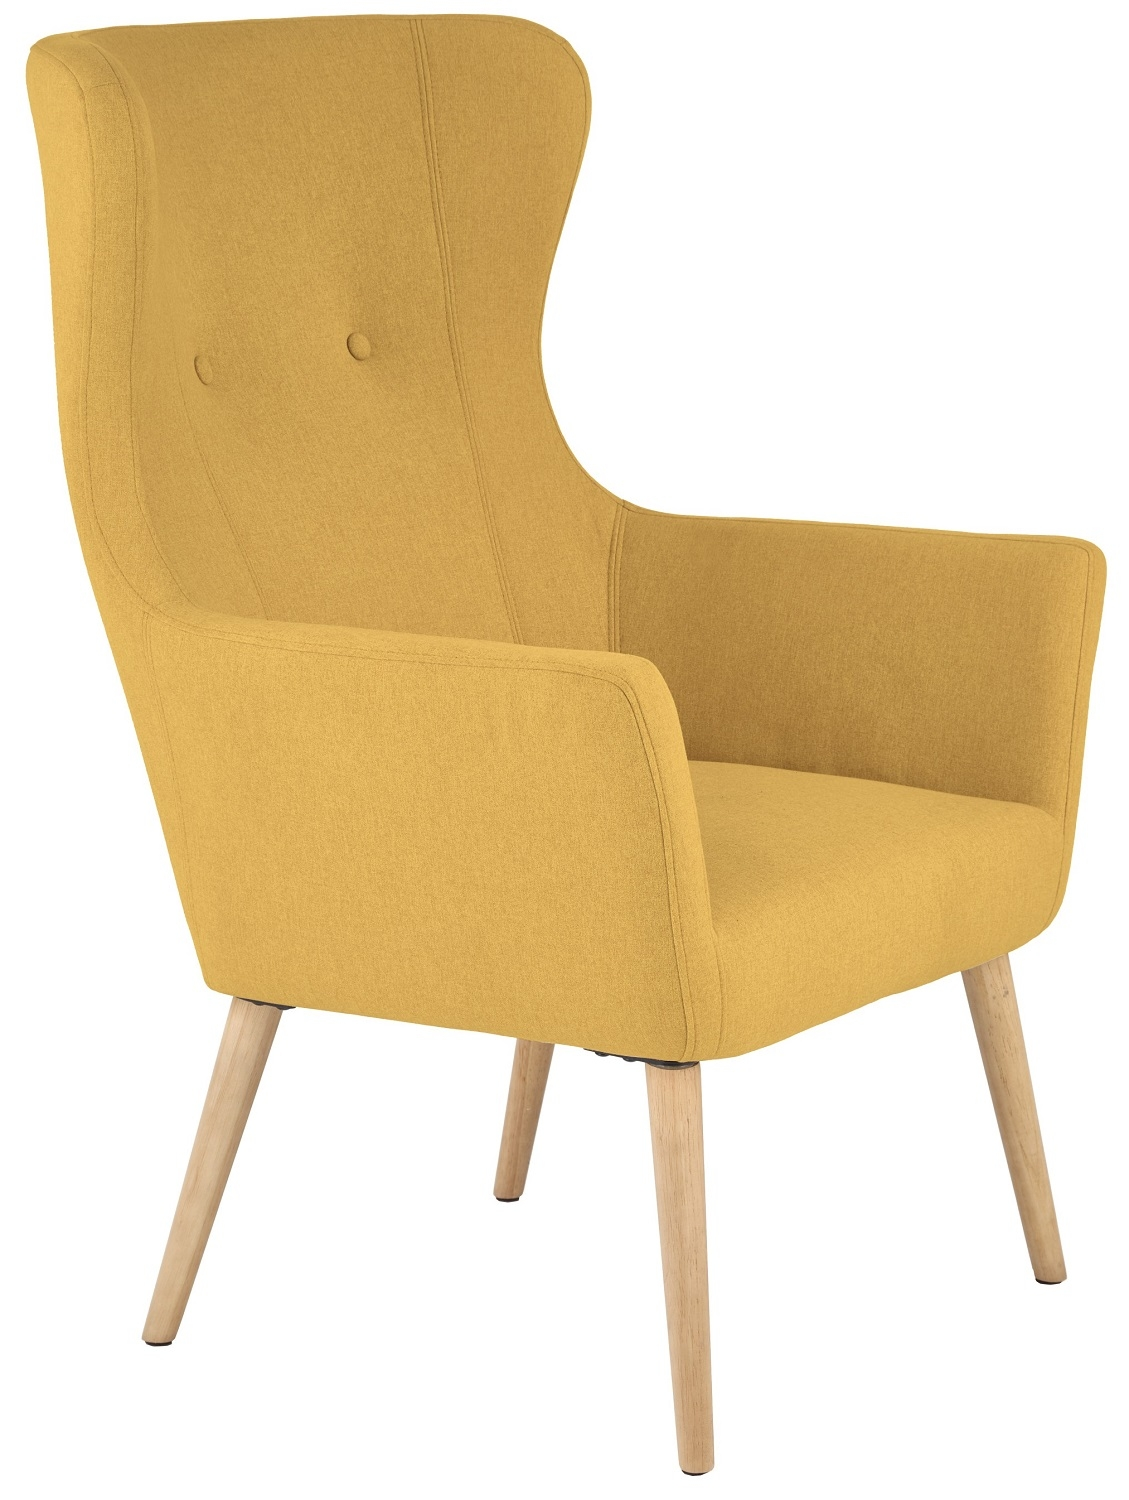 Fauteuil Cotto in mosterd geel | Home Style